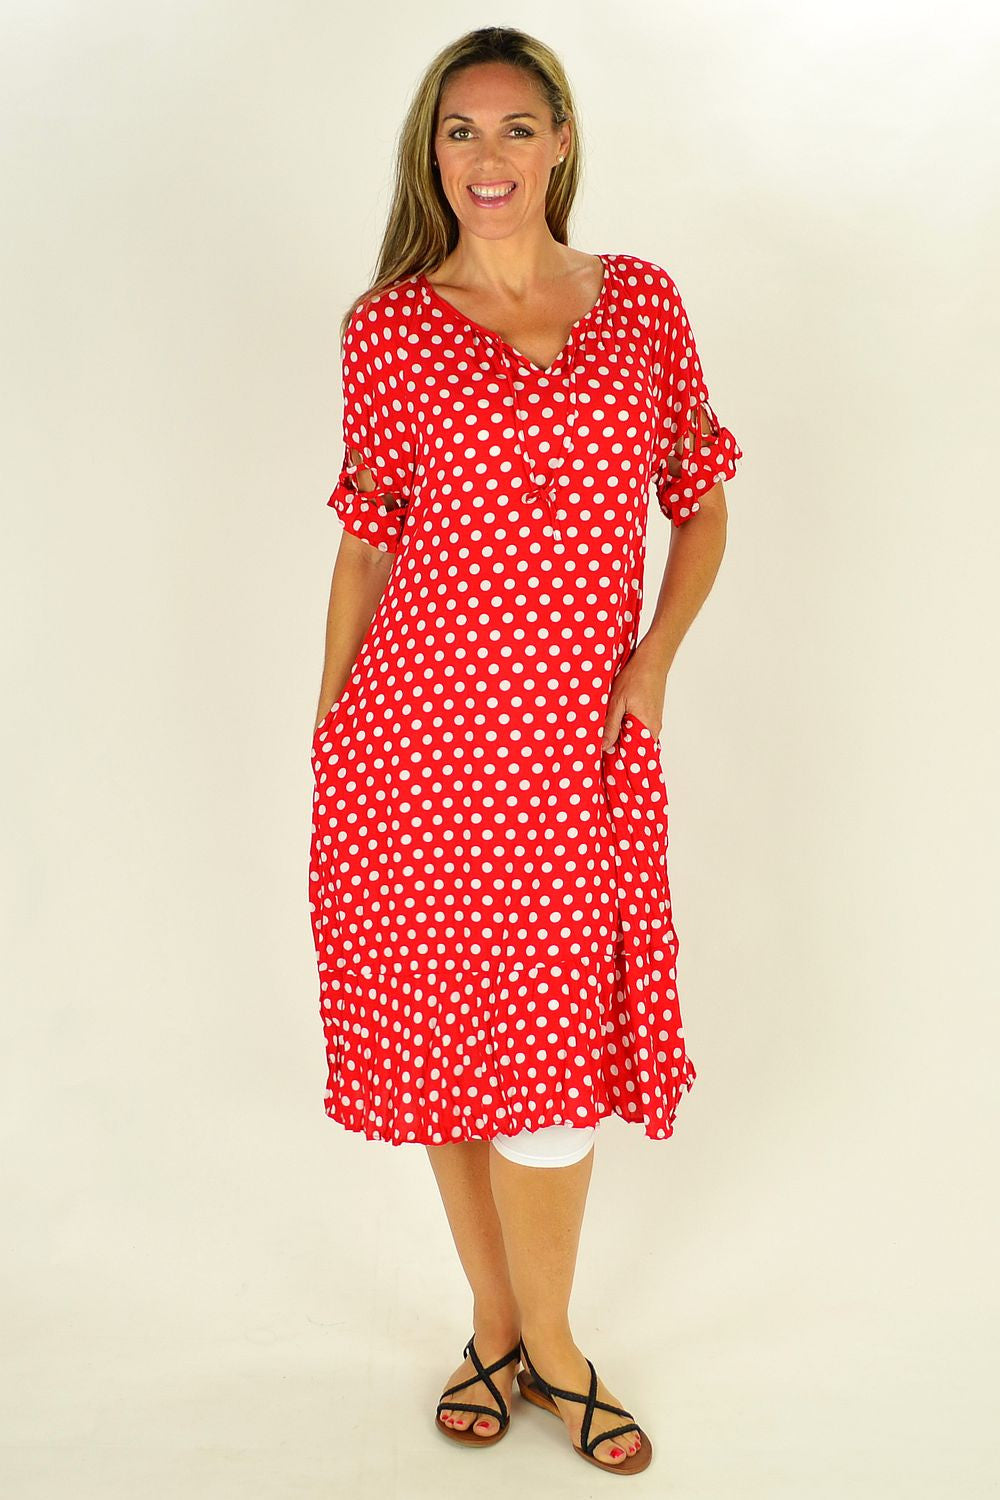 Red White Spotty Tunic Dress - at I Love Tunics @ www.ilovetunics.com = Number One! Tunics Destination